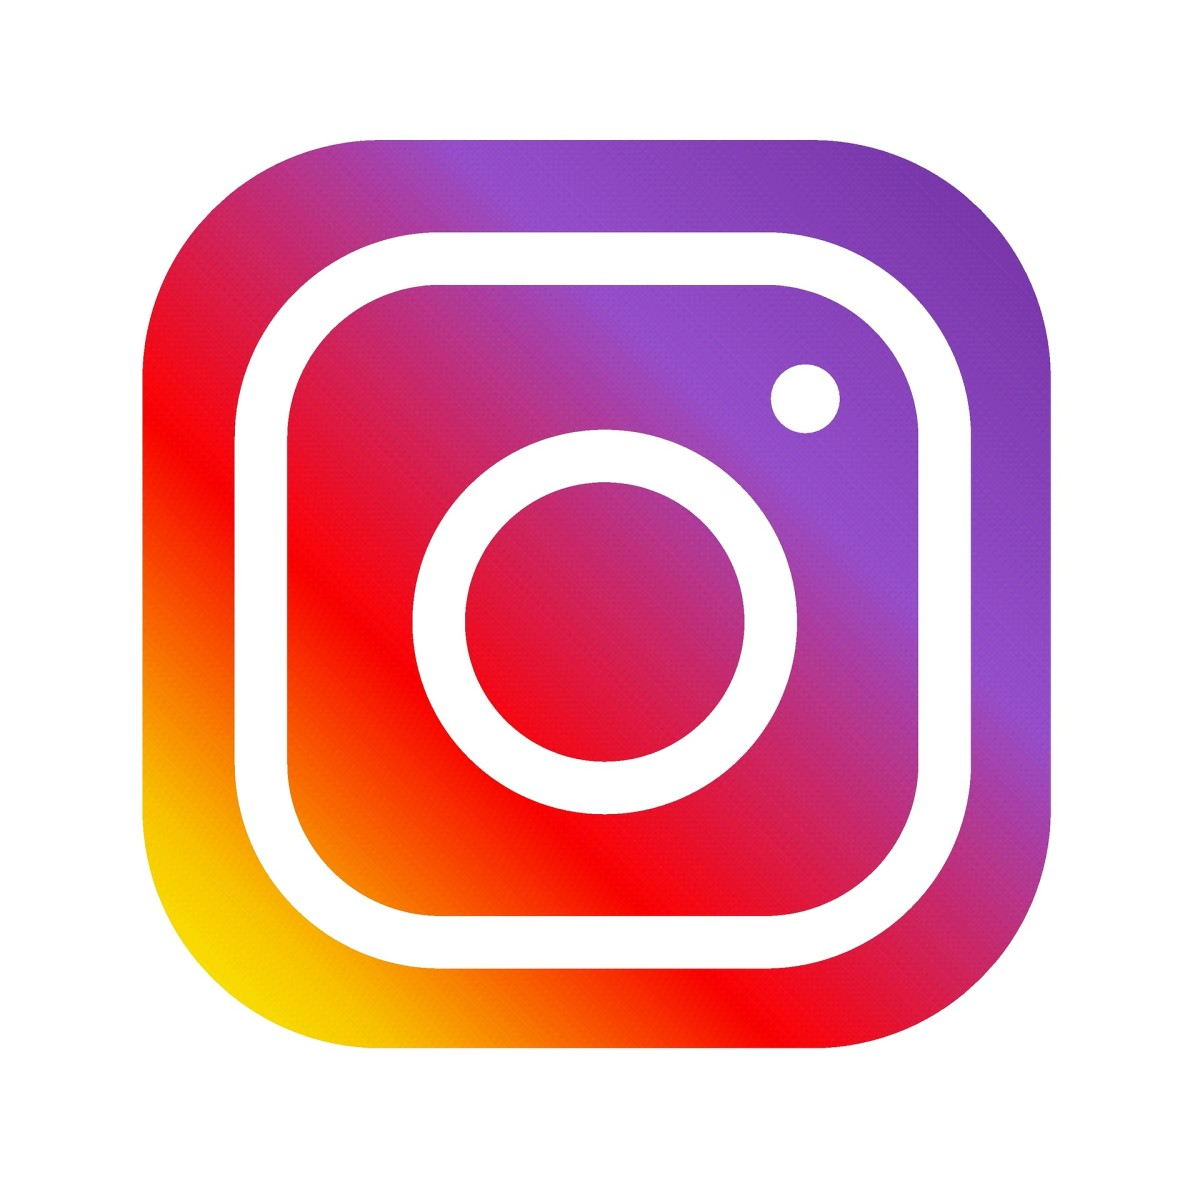 Instagram is one of the leading social media platforms available today